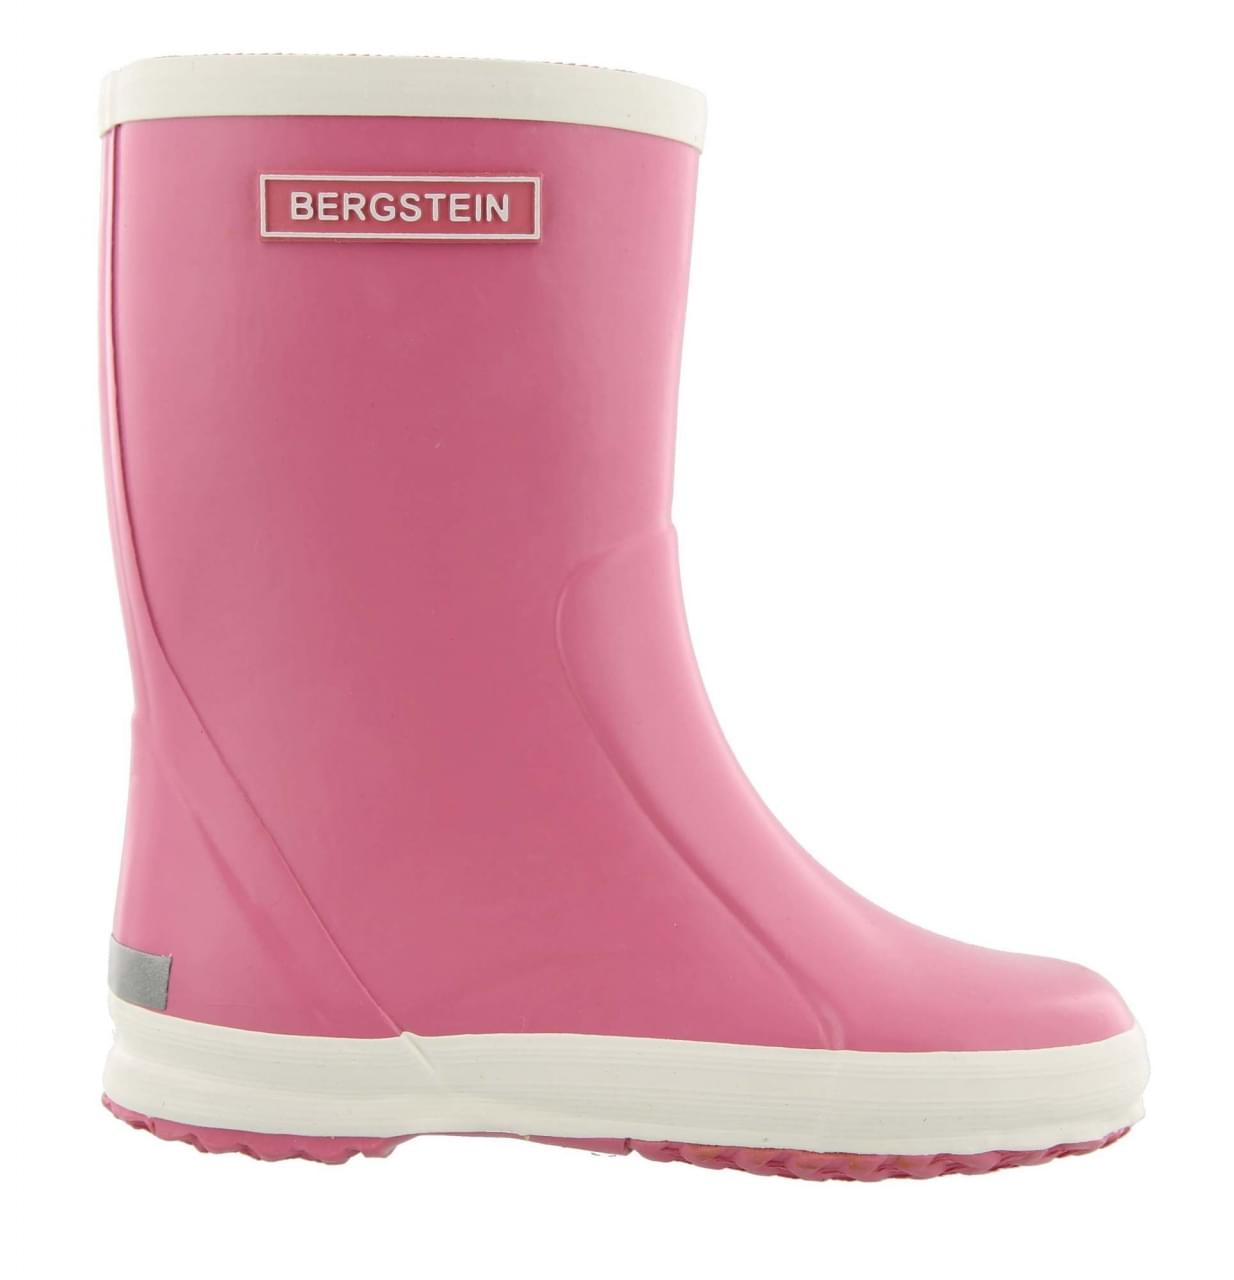 Bergstein Rainboot Junior